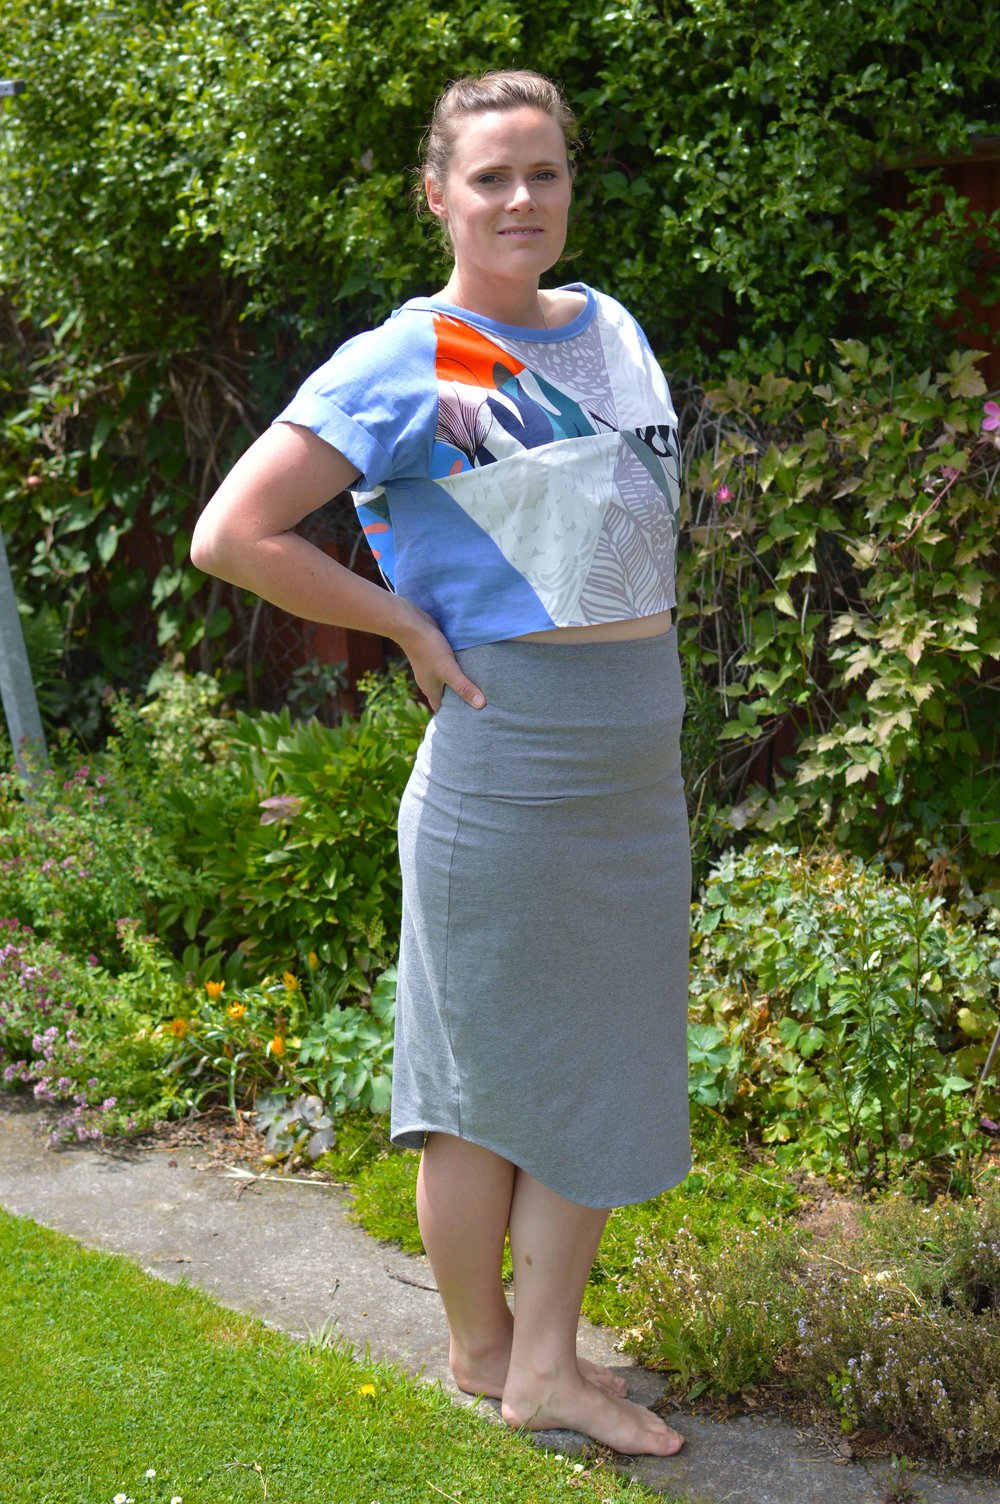 Sew Your Own Summer Capsule Wardrobe: Geodesic Top Pattern Hack (Blueprints for Sewing)